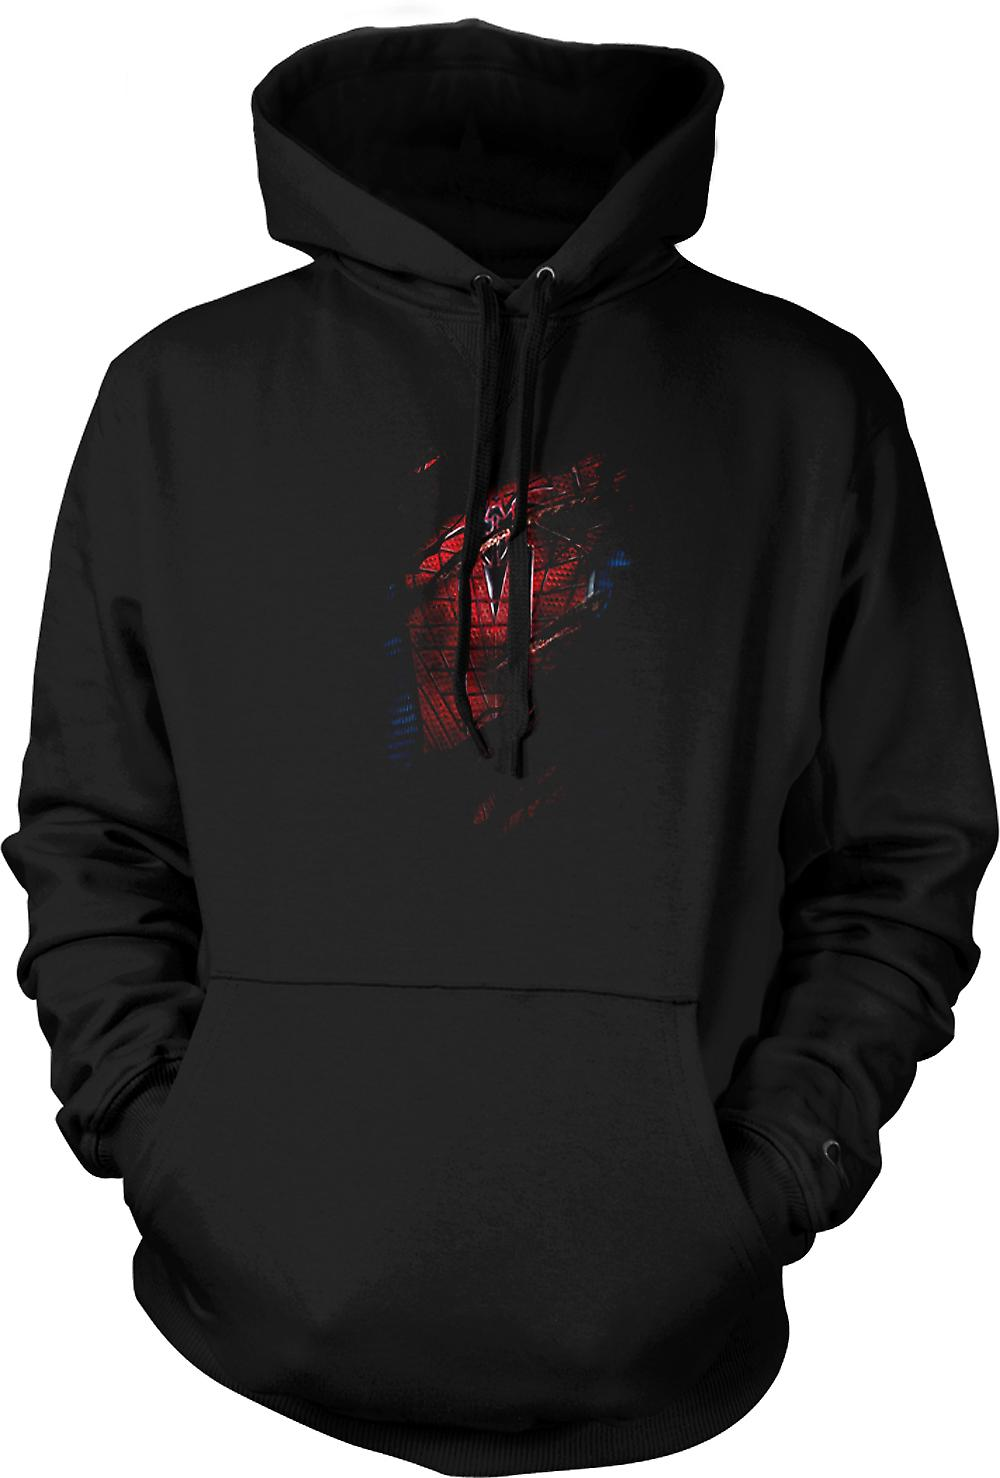 Mens Hoodie - nuovo Costume di Spiderman - supereroe strappato Design